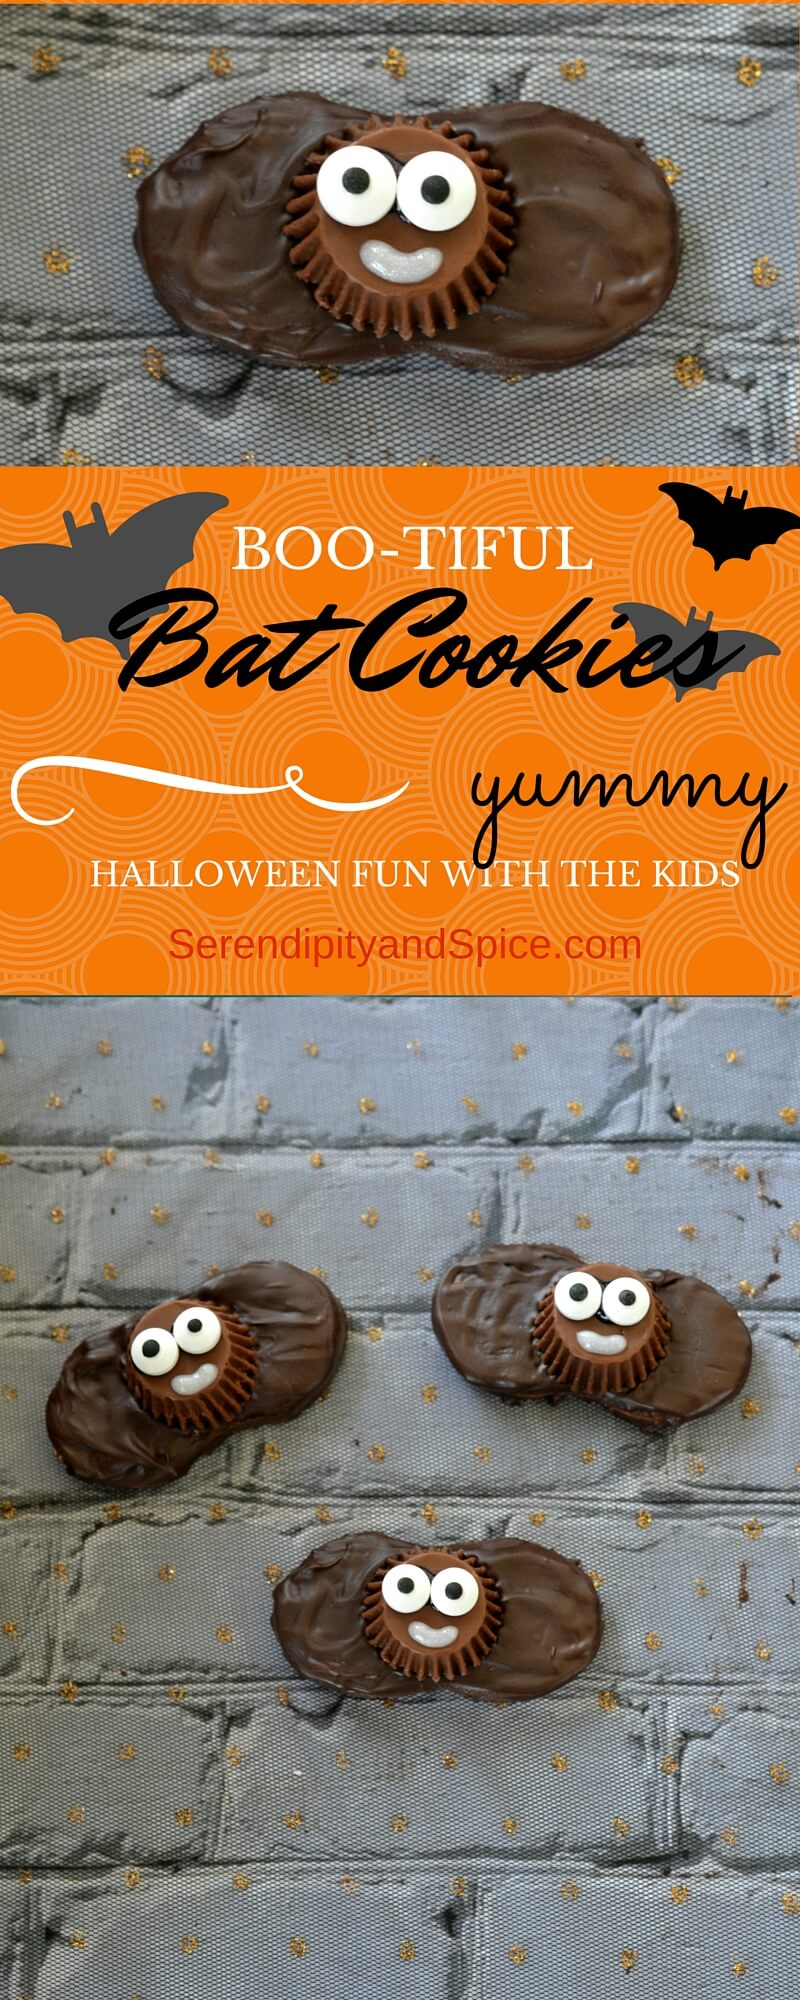 How to Make Boo-tiful Bat Cookies